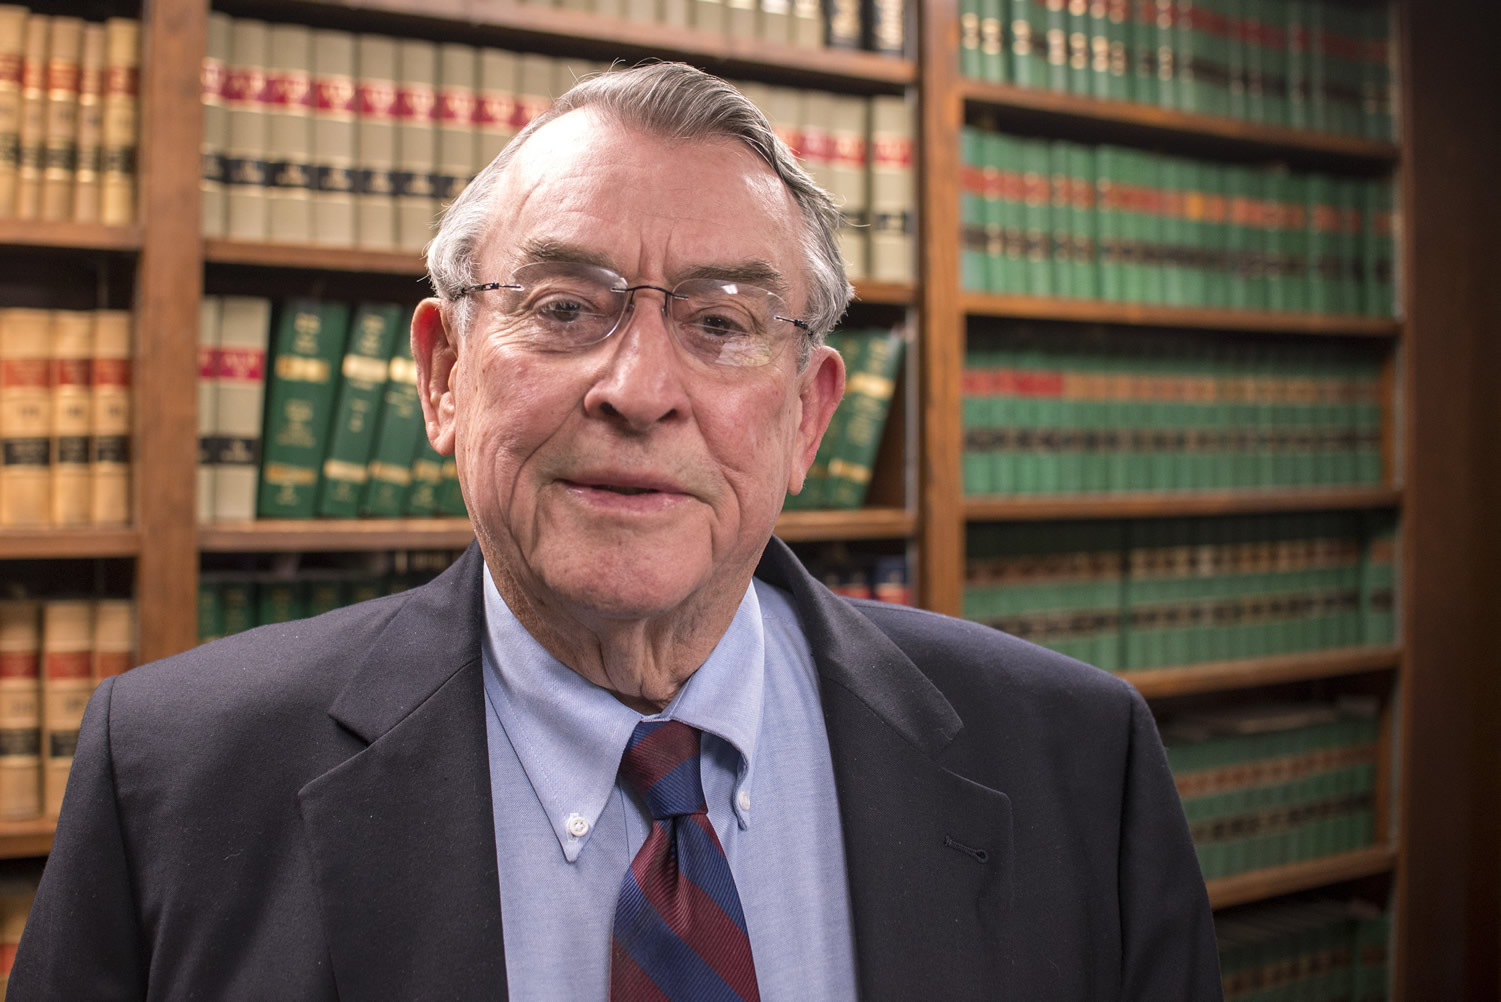 Read the full story, CCCC attorney named Sanford Herald Lifetime Achievement Award winner